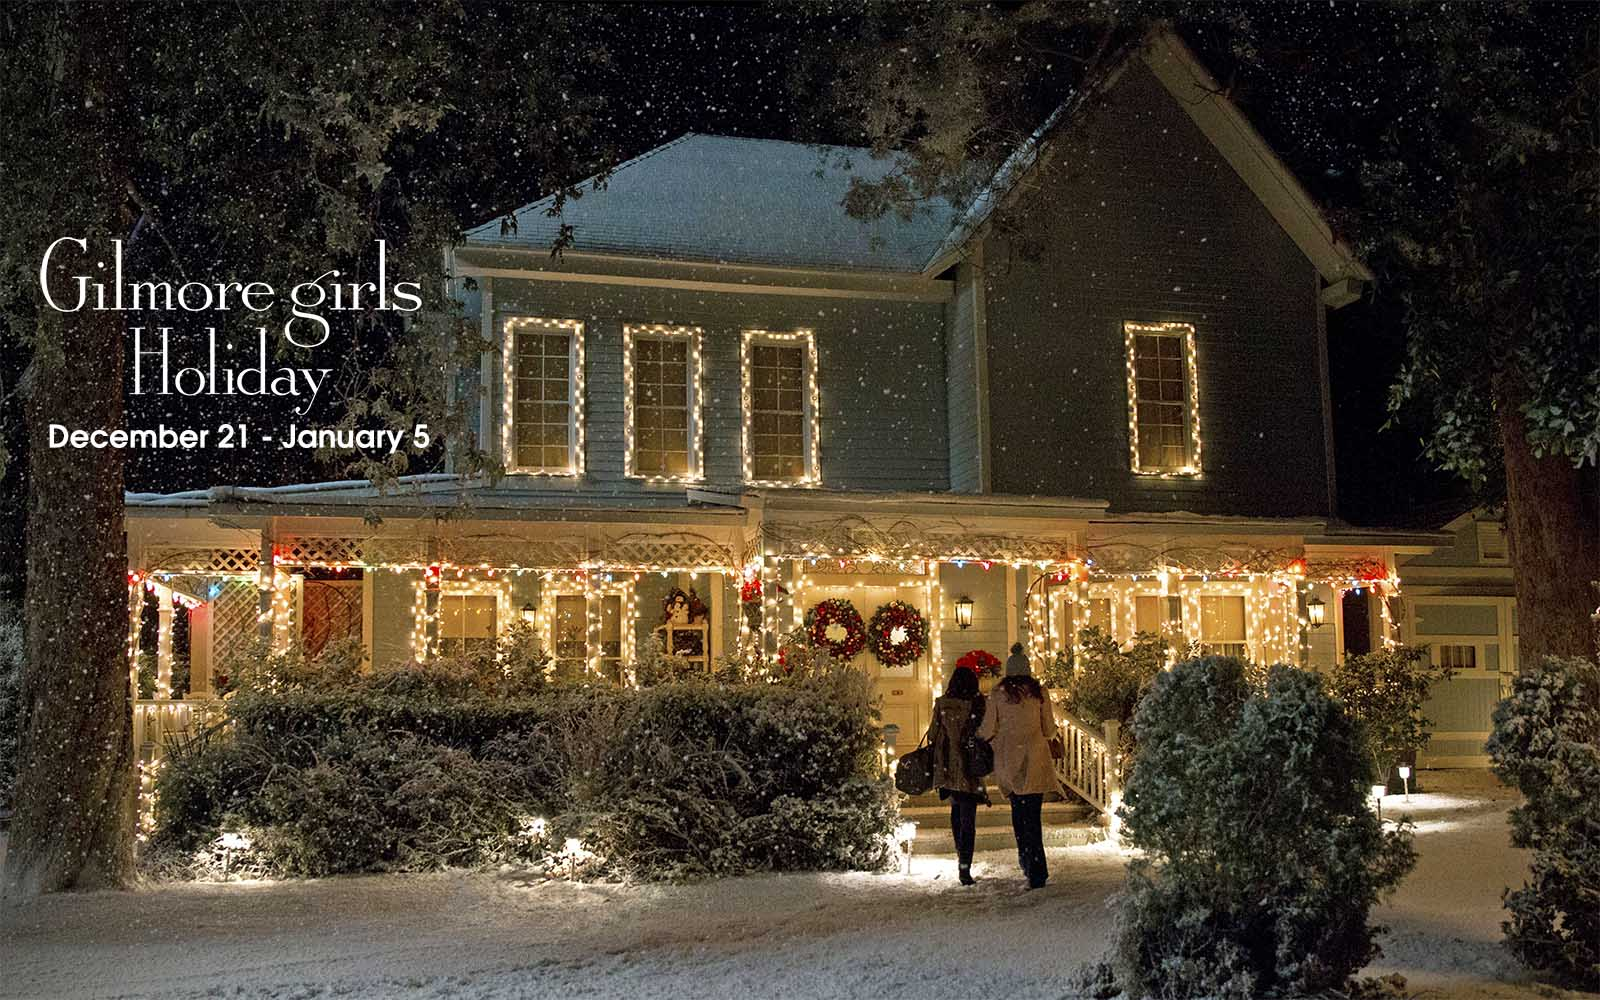 Gilmore Girls Holiday